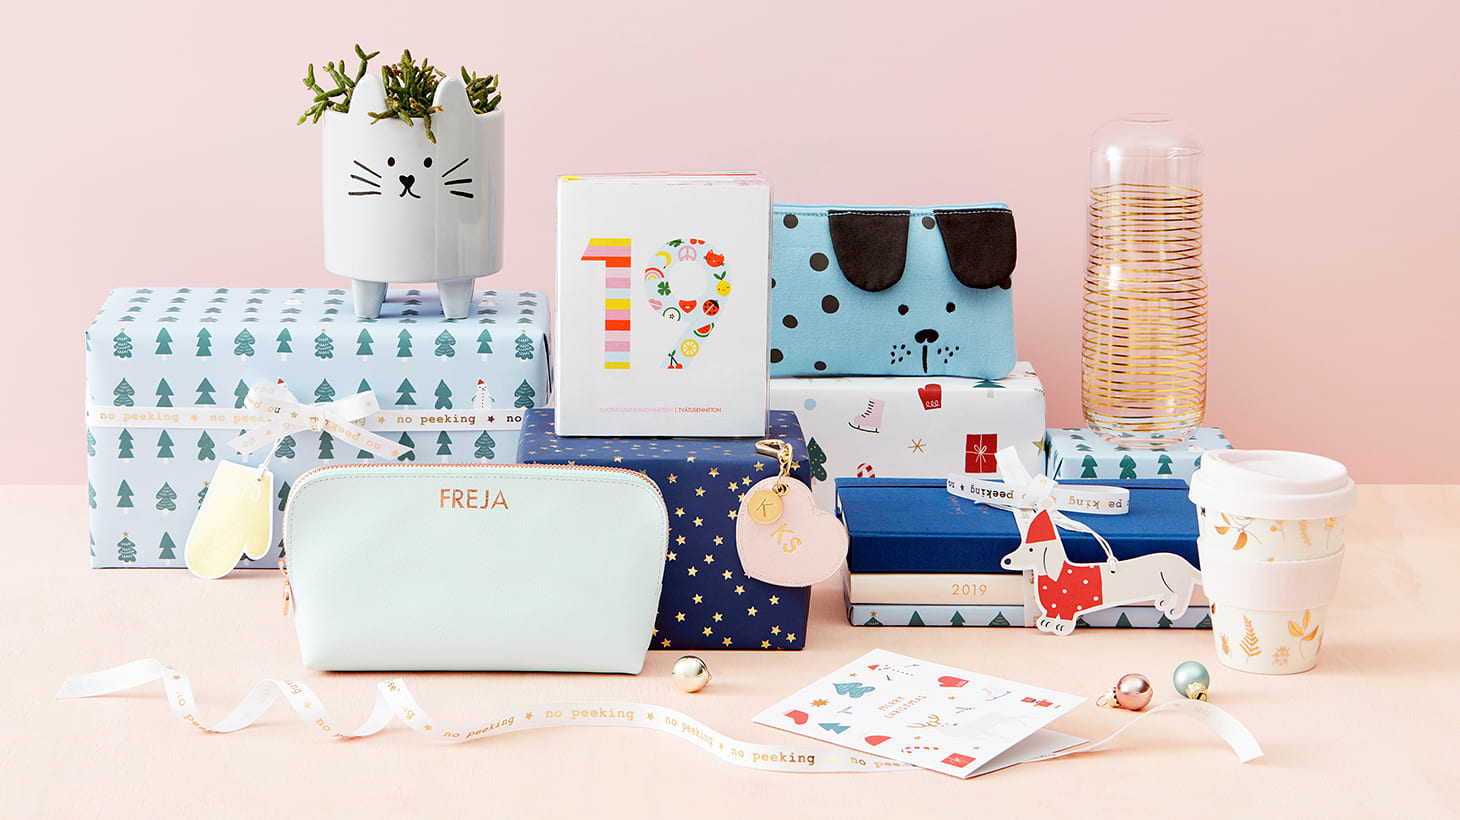 EXCLUSIVE: Get 25% Off kikki.K eGift Cards to Redeem Online or In Store! kikki.K Online Redemption or In-Store